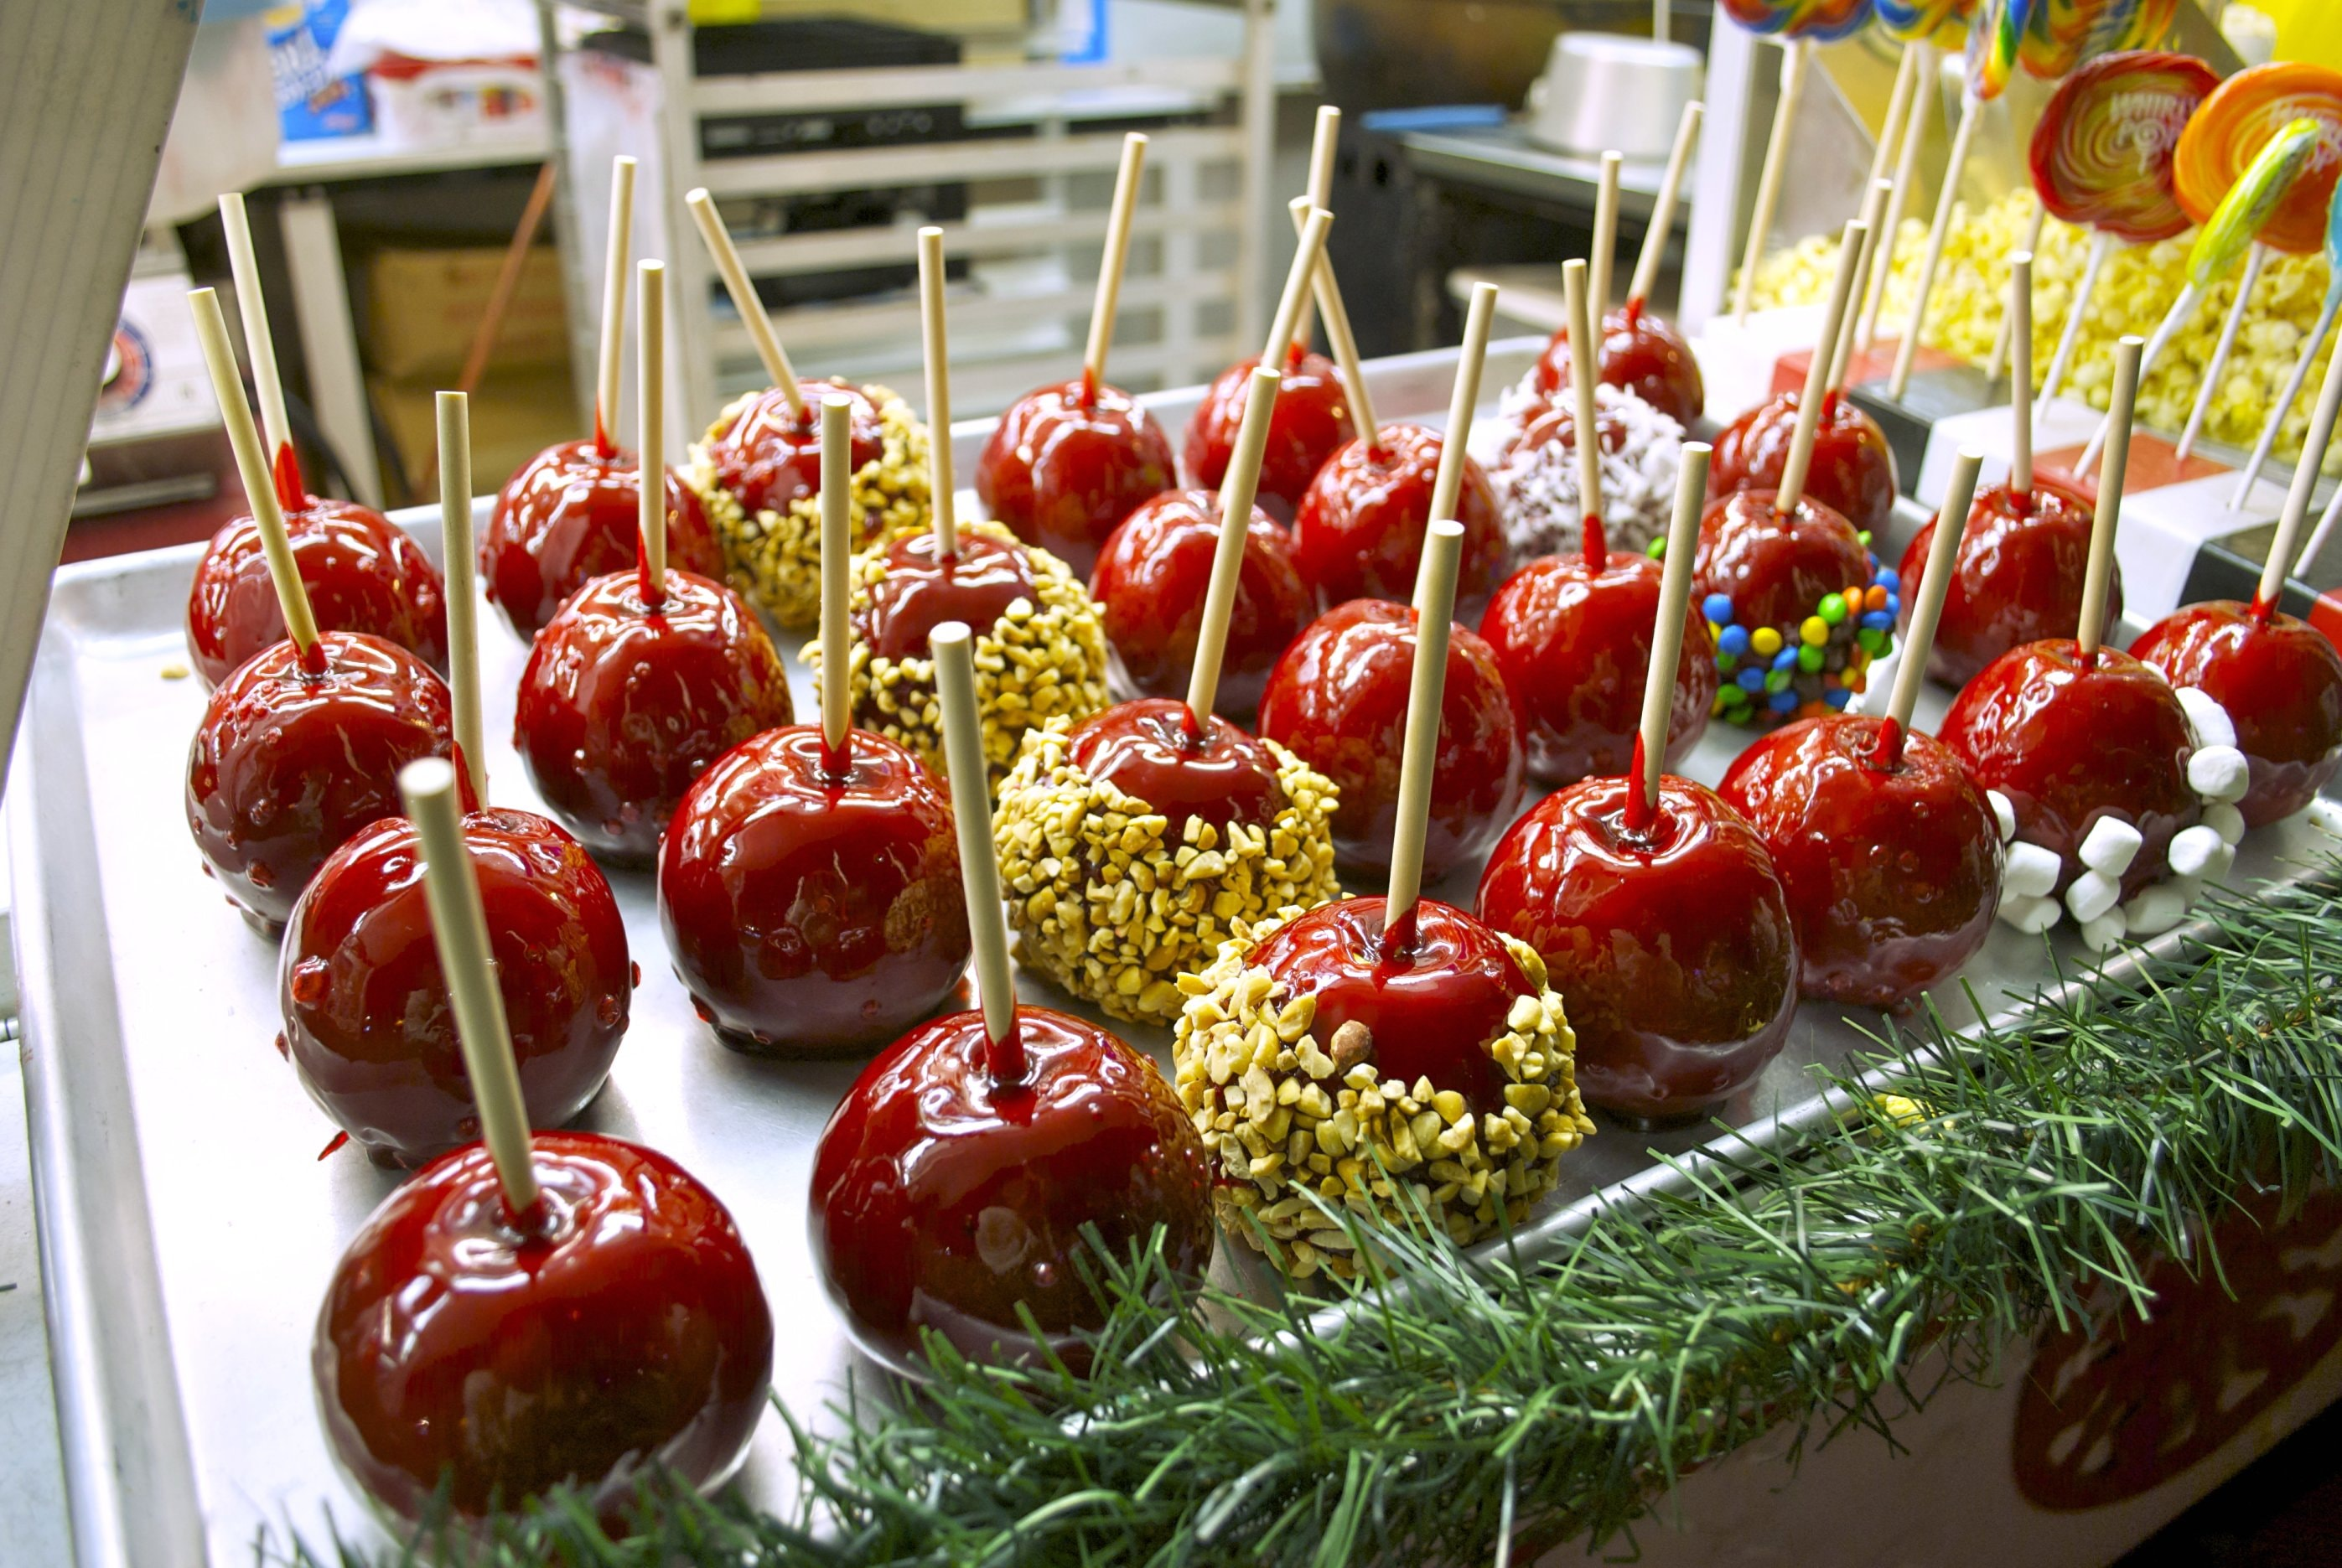 candy apples by bob brown